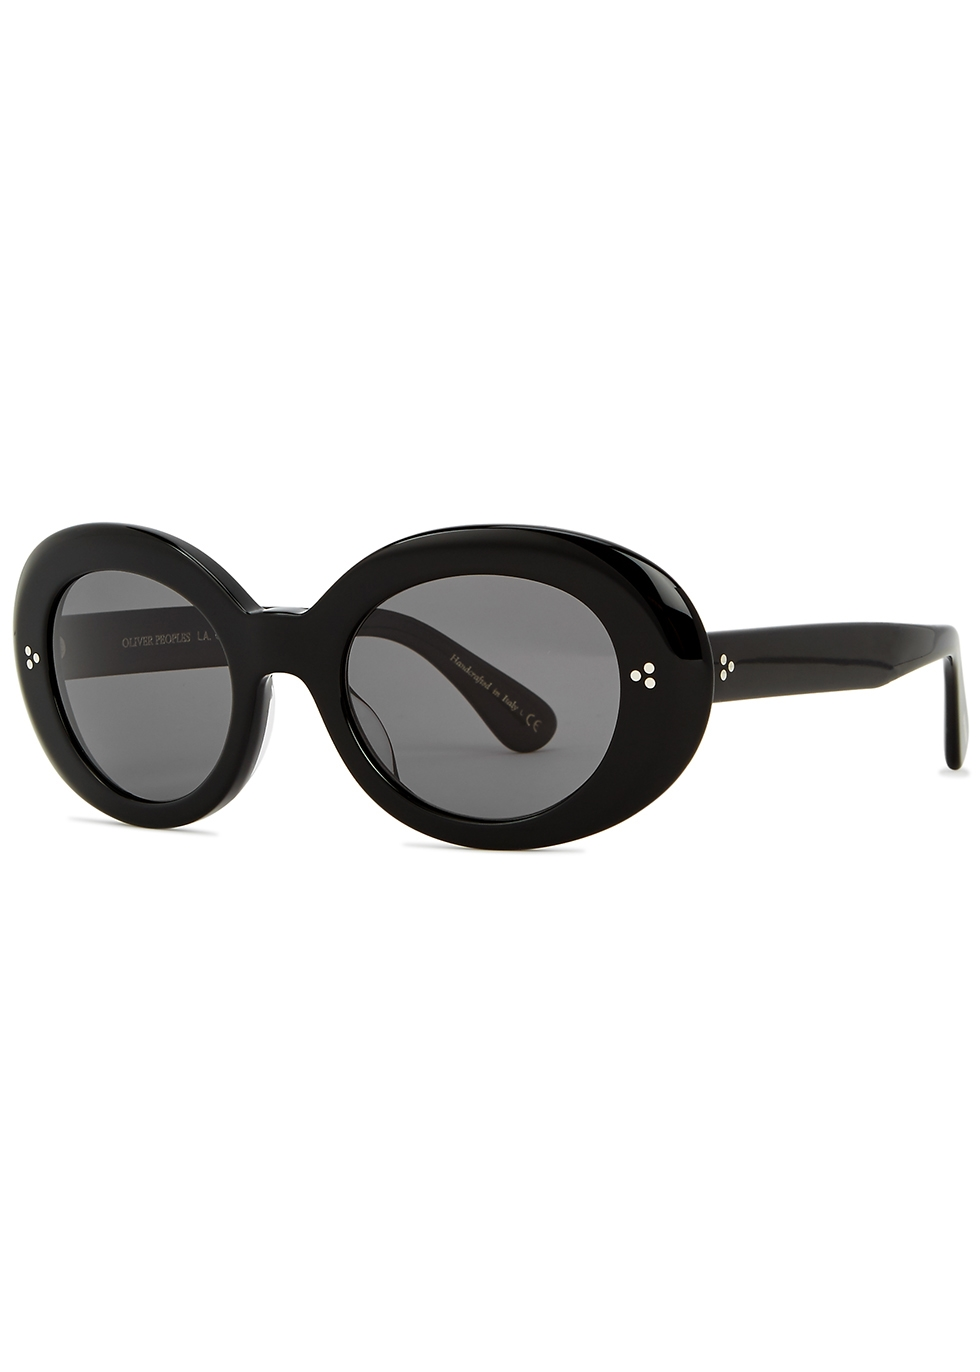 Erissa black round-frame sunglasses - Oliver Peoples